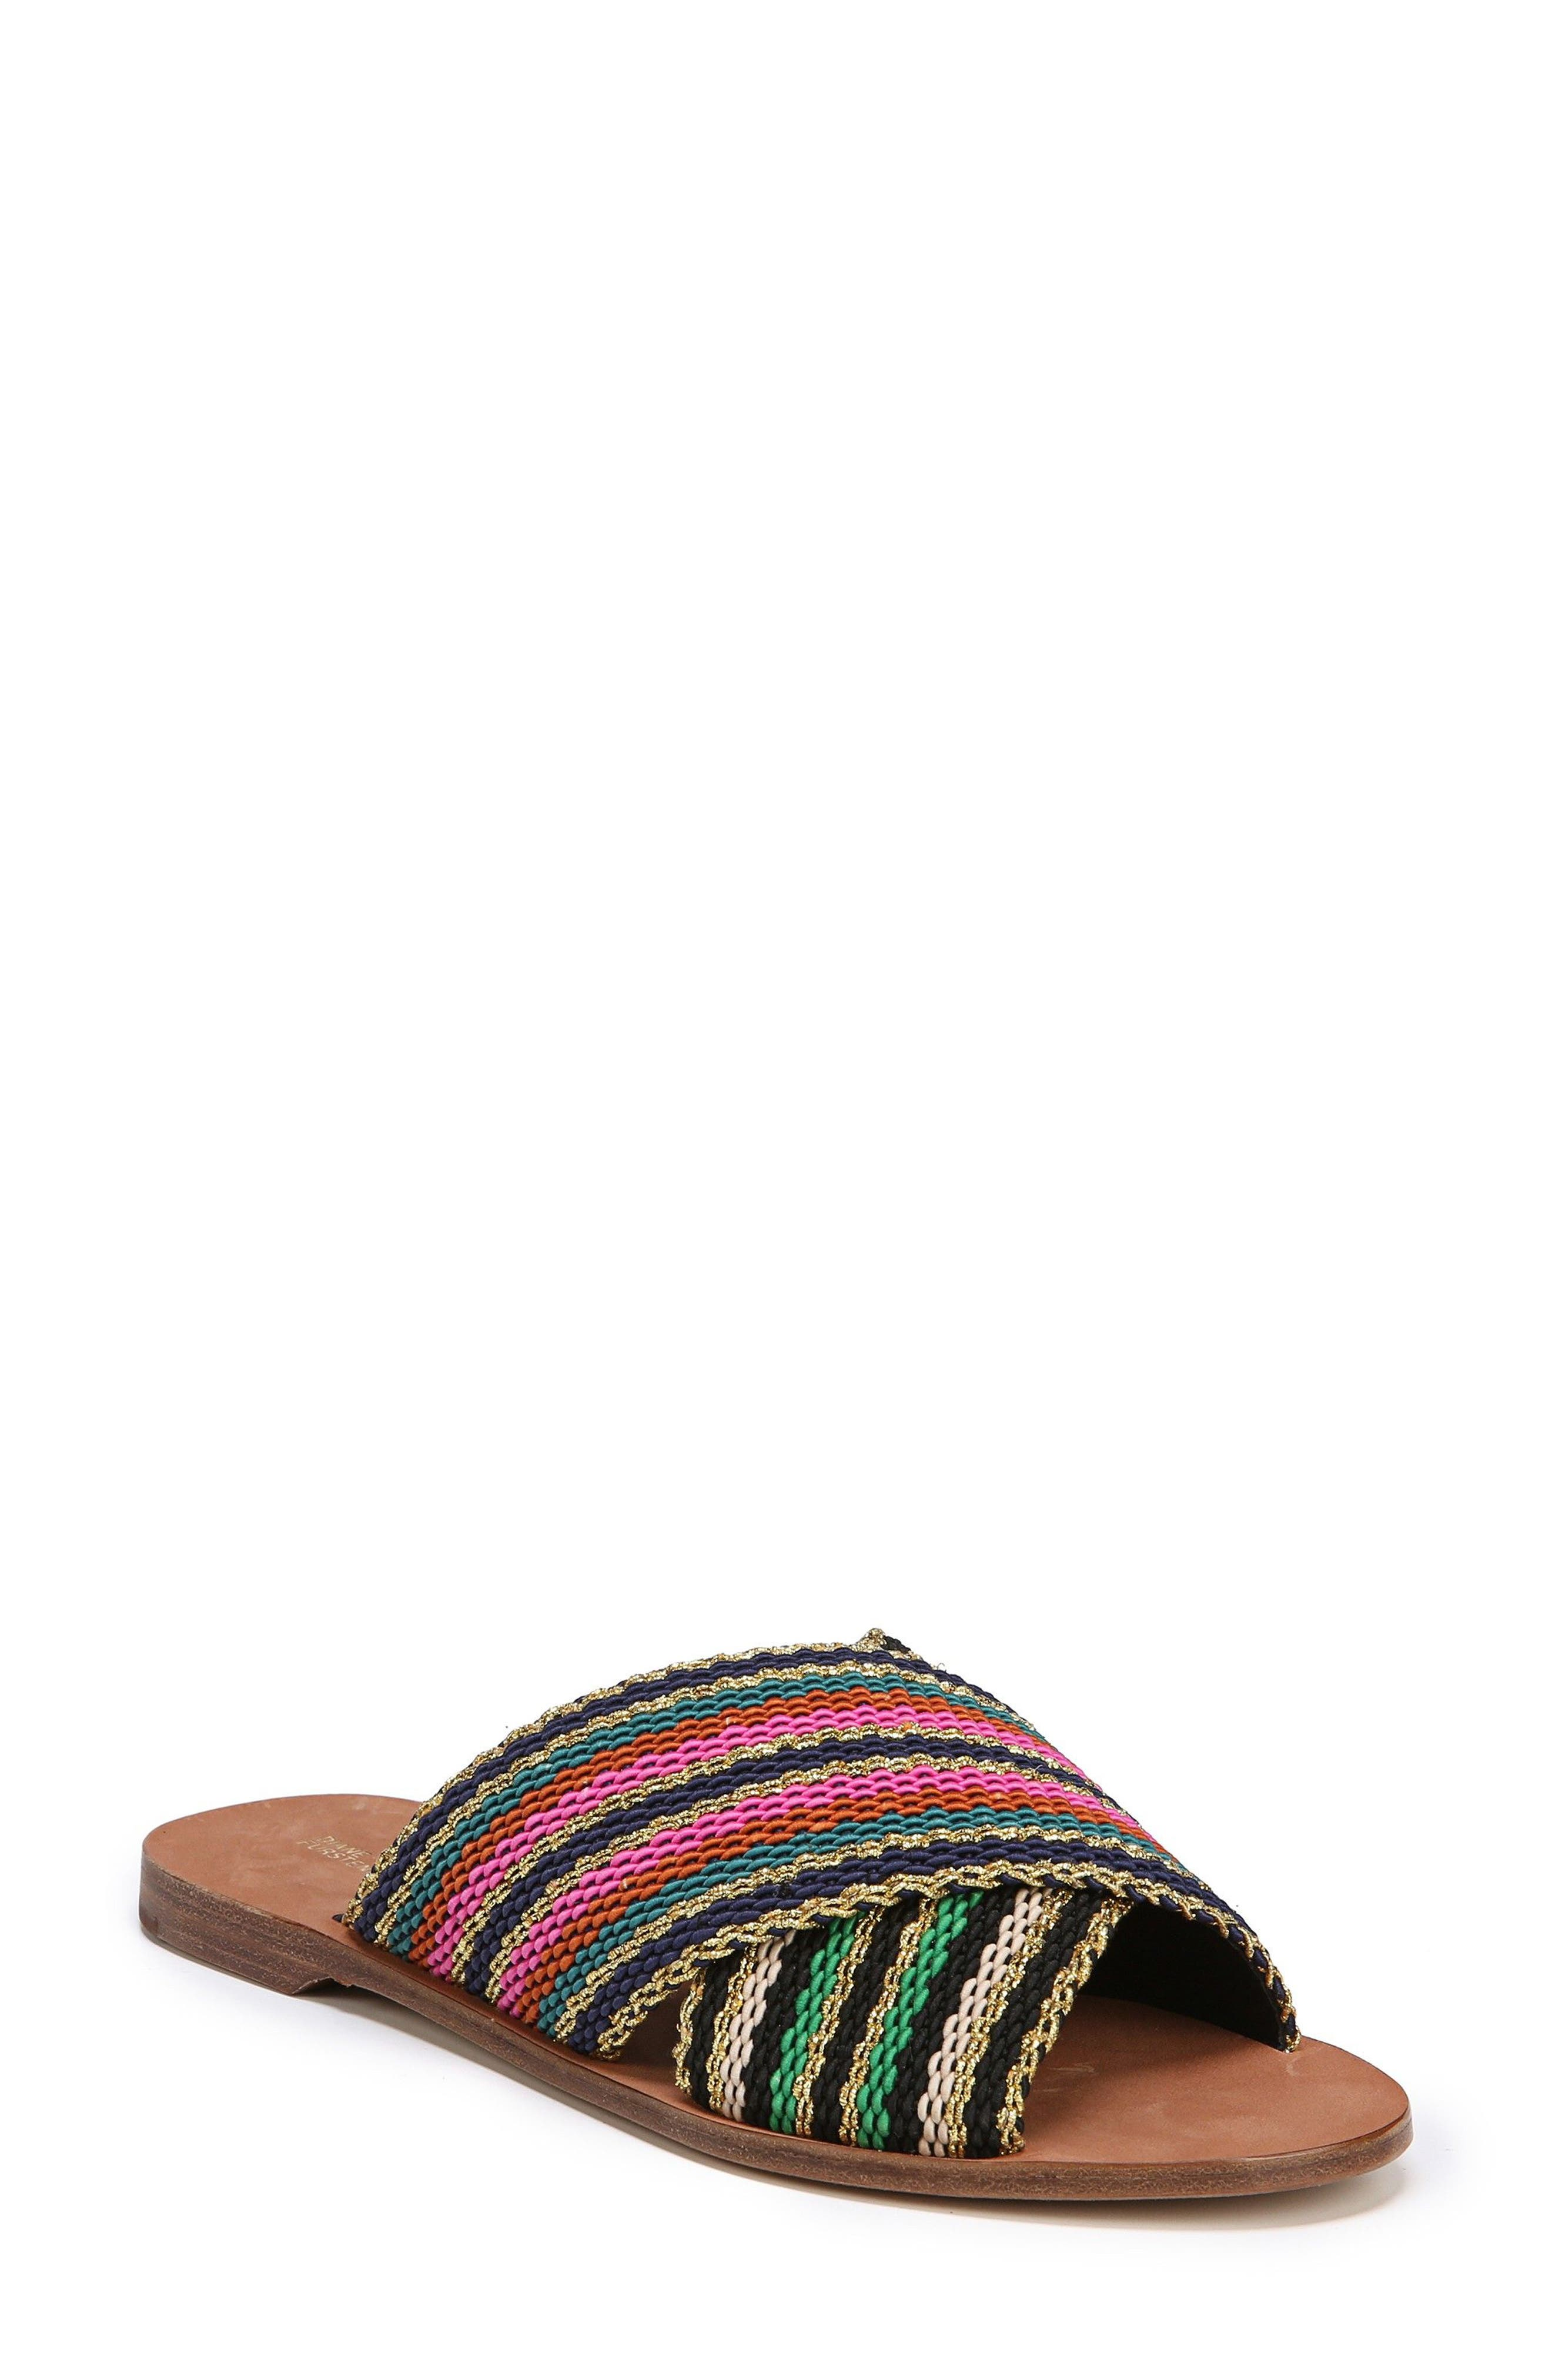 Cindi Woven Slide Sandal,                             Main thumbnail 1, color,                             BLACK/ GOLD